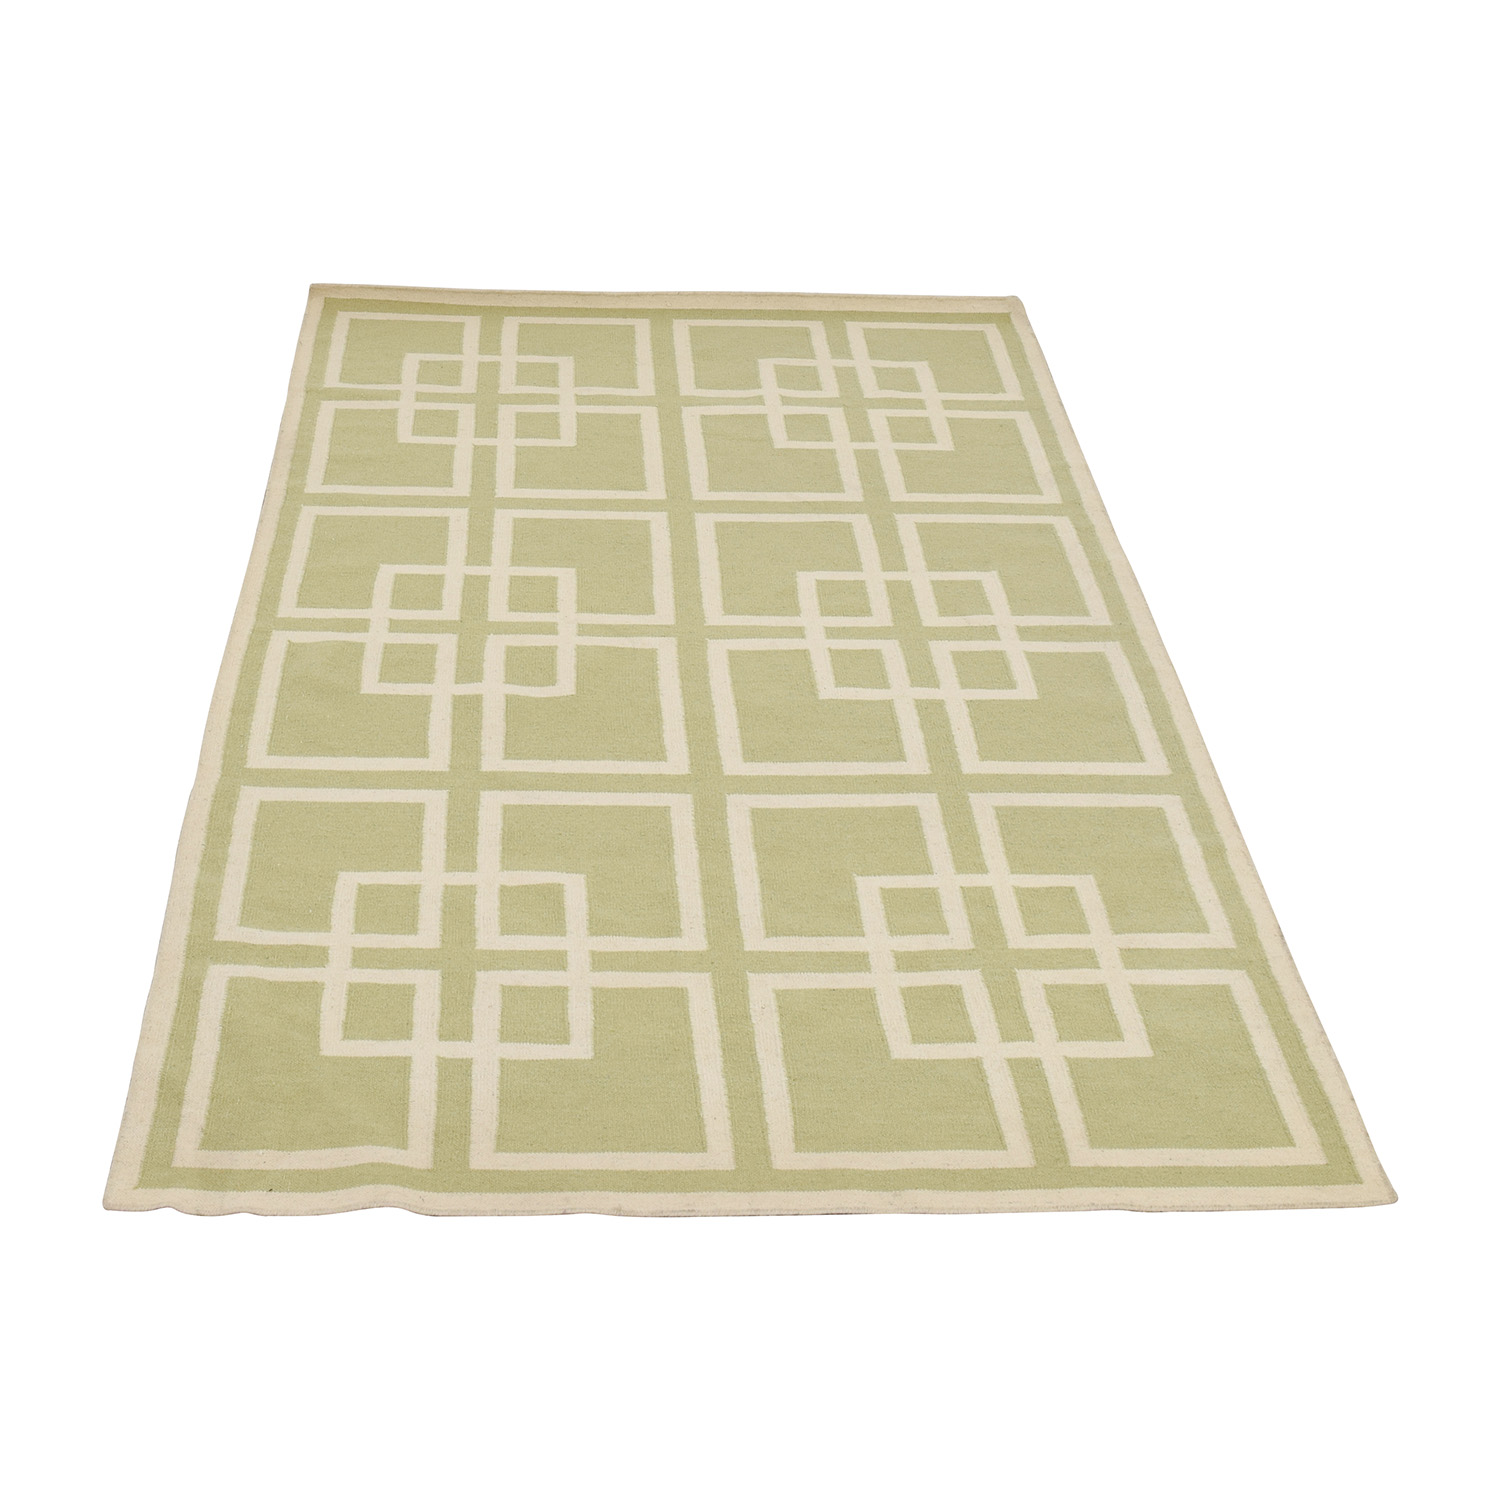 shop Pottery Barn Green and White Rug Pottery Barn Rugs